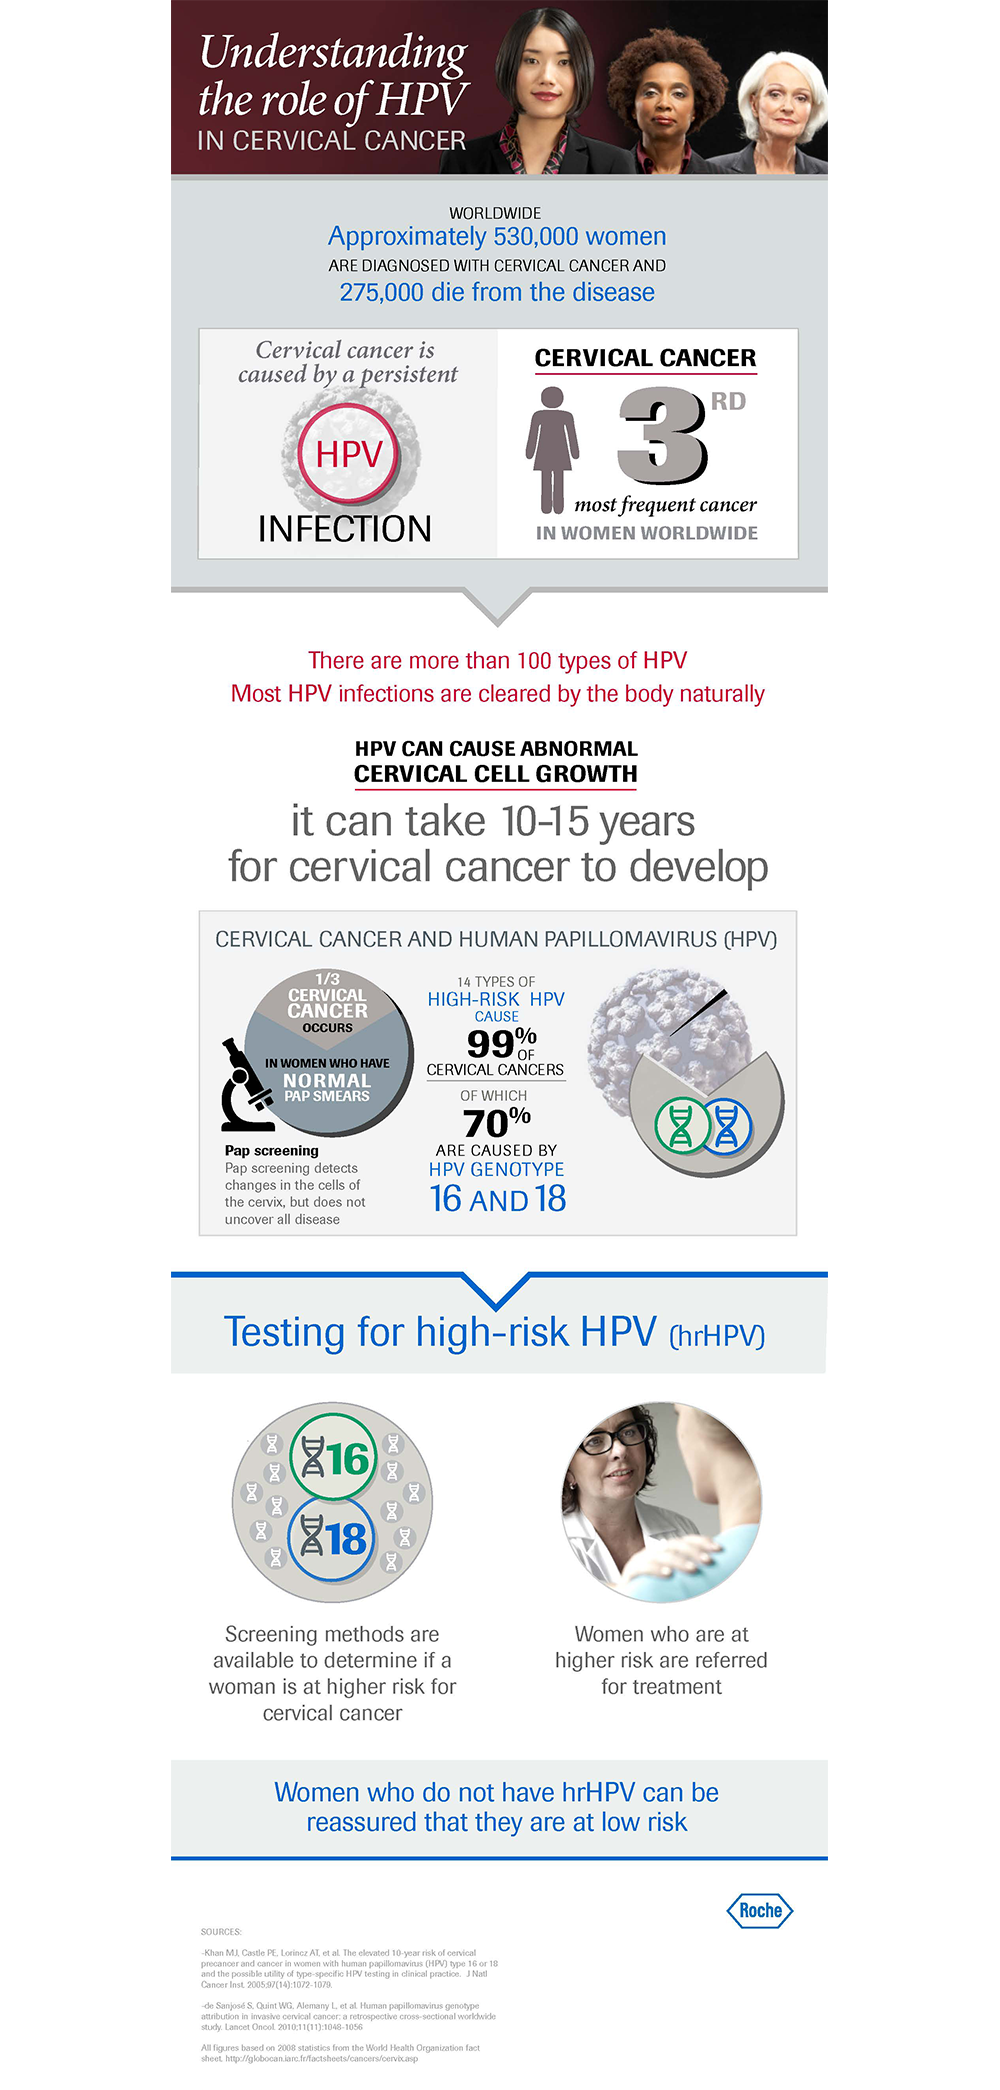 Infographic: Understanding the role of HPV in cervical cancer